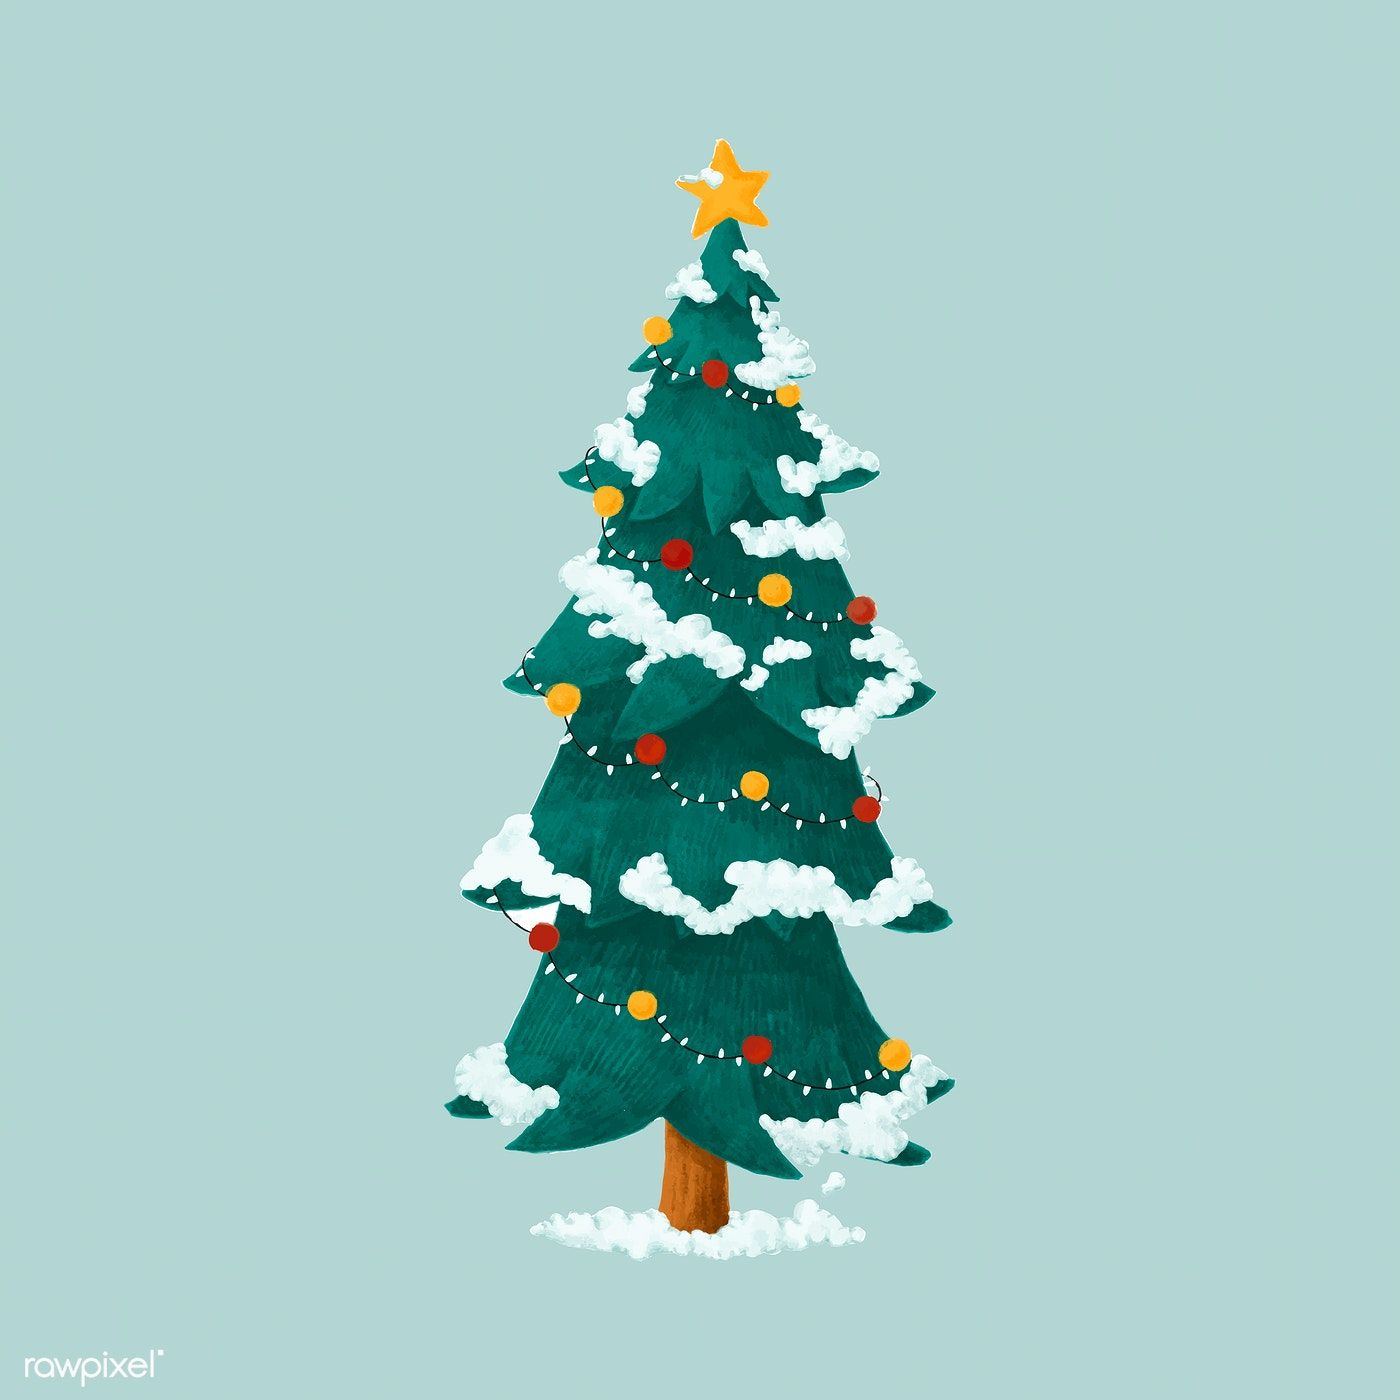 Hand Drawn Decorated Christmas Tree Illustration Free Image By Rawpixel Com Noon Christmas Tree Drawing Christmas Illustration Tree Illustration